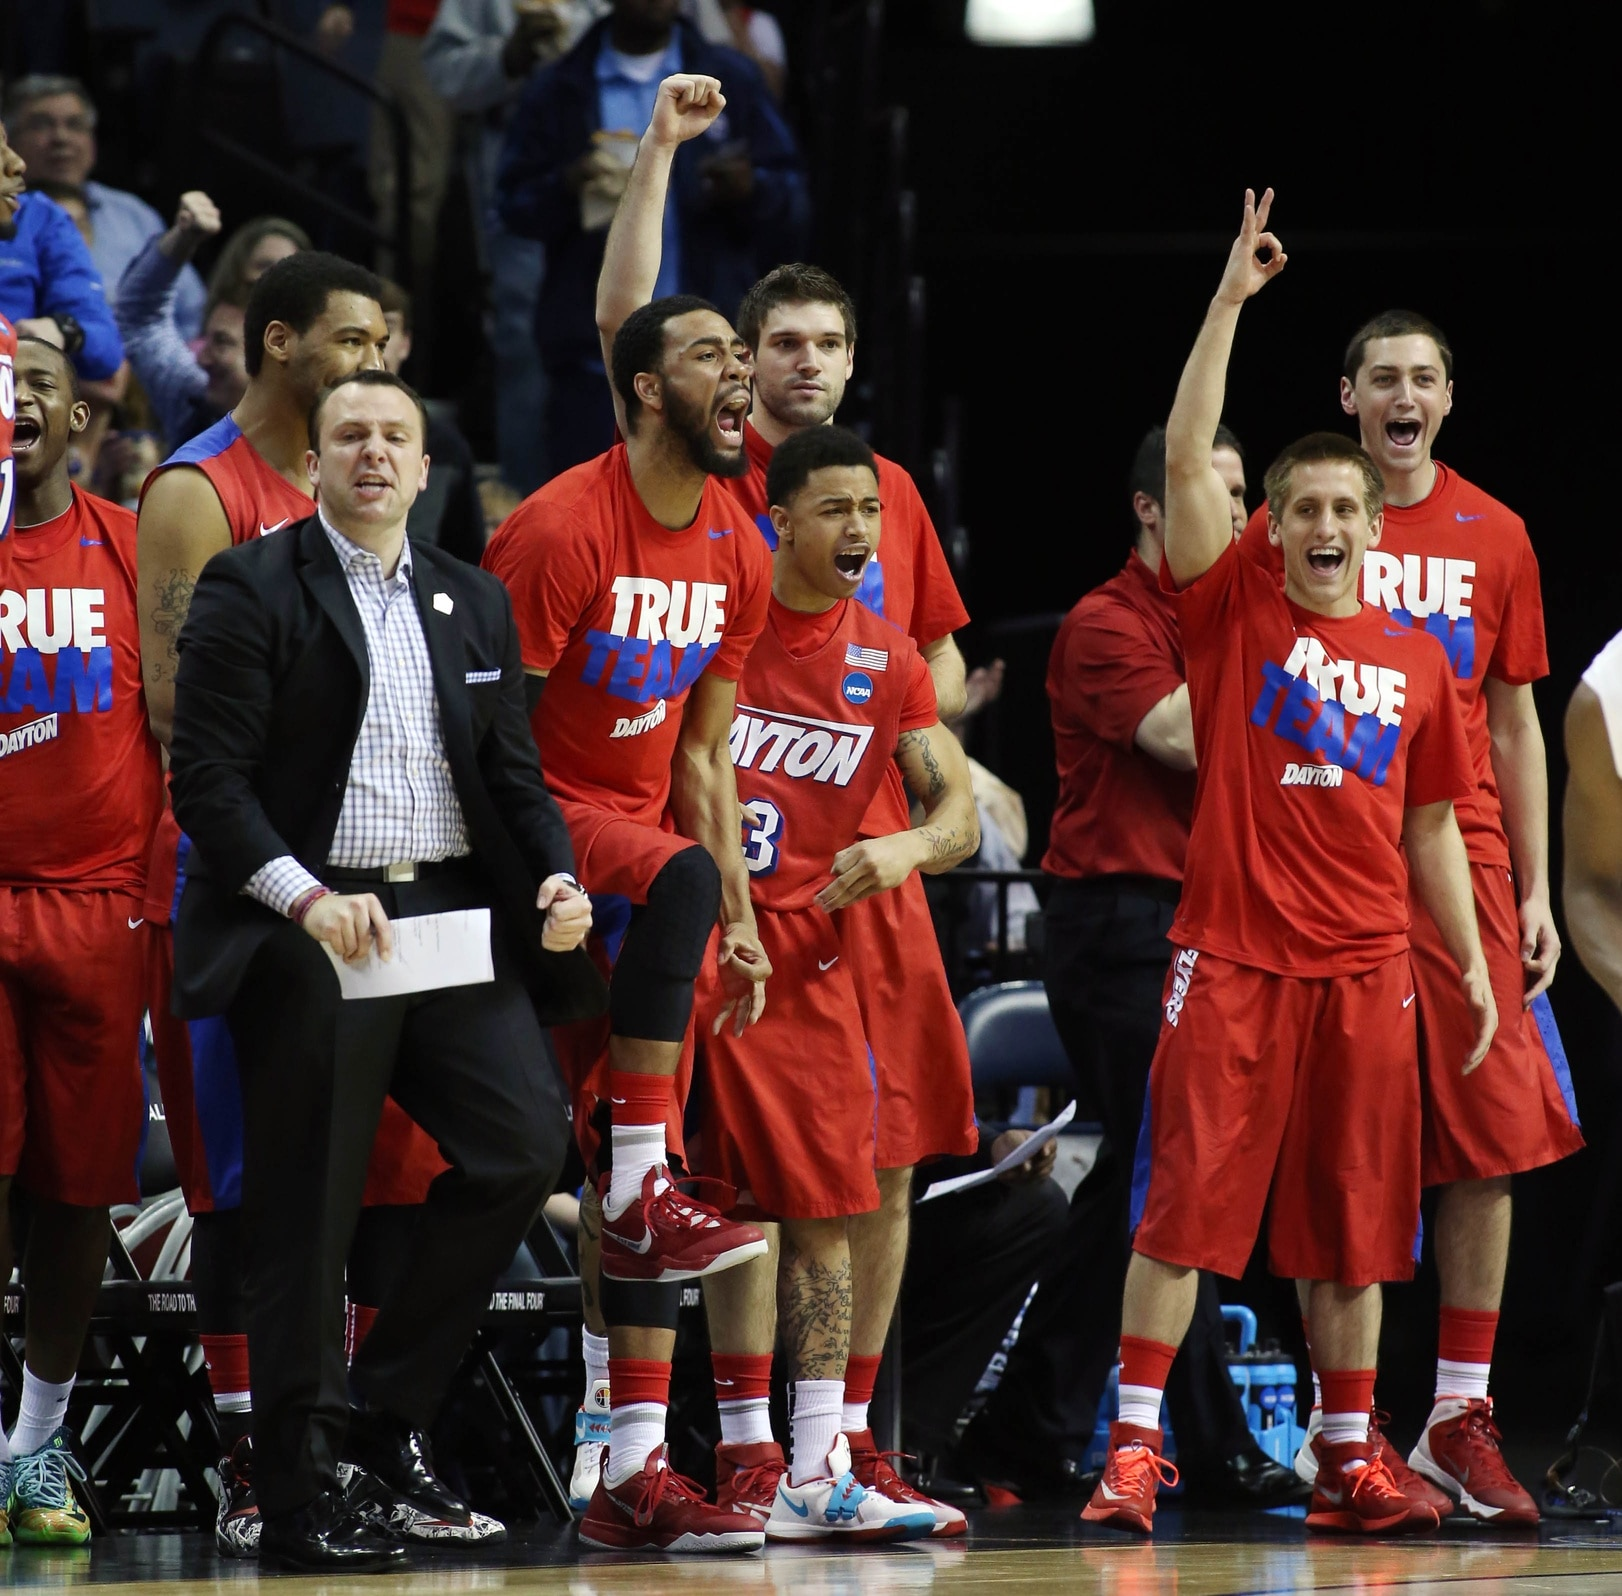 Dayton Took An 11 Seed To The Elite Eight In 2014